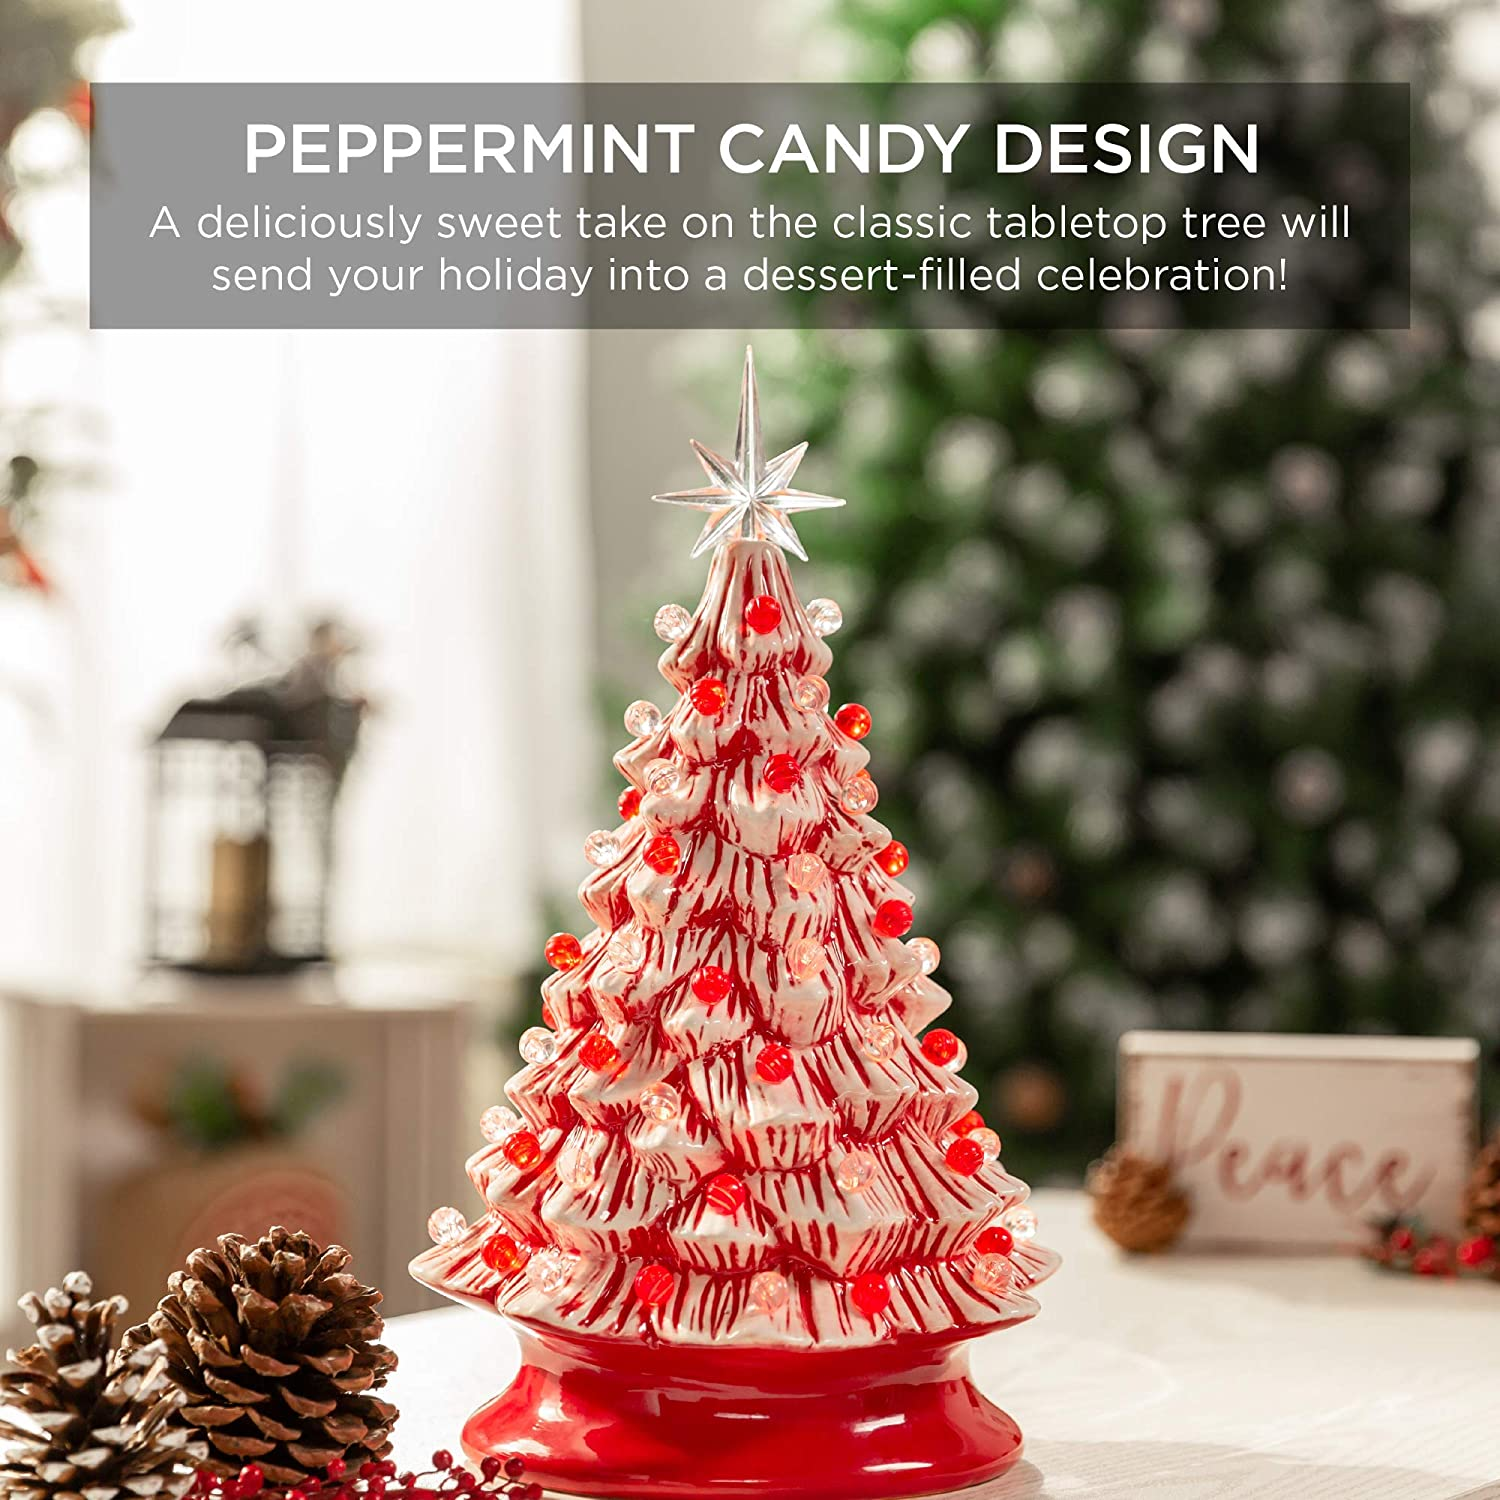 #5132 10 Miniature Peppermint Candy Cane Ornament Christmas Feather Tree Decor Craft Supply Lot